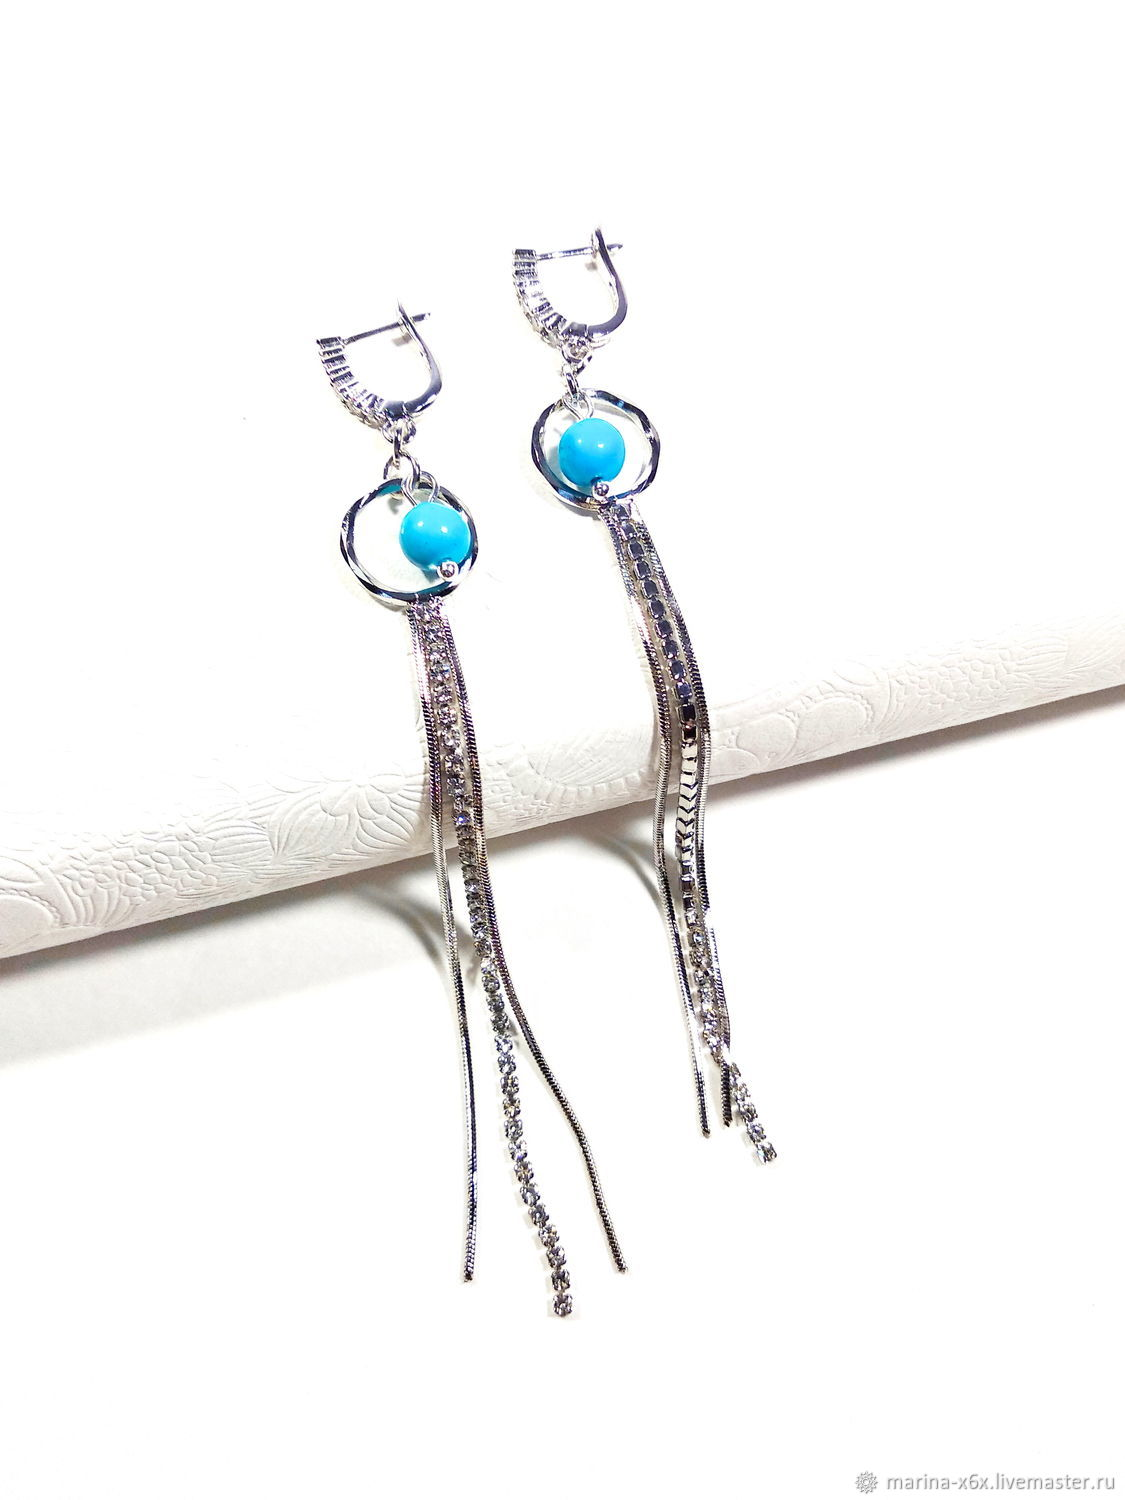 earrings with turquoise, Earrings, Moscow,  Фото №1